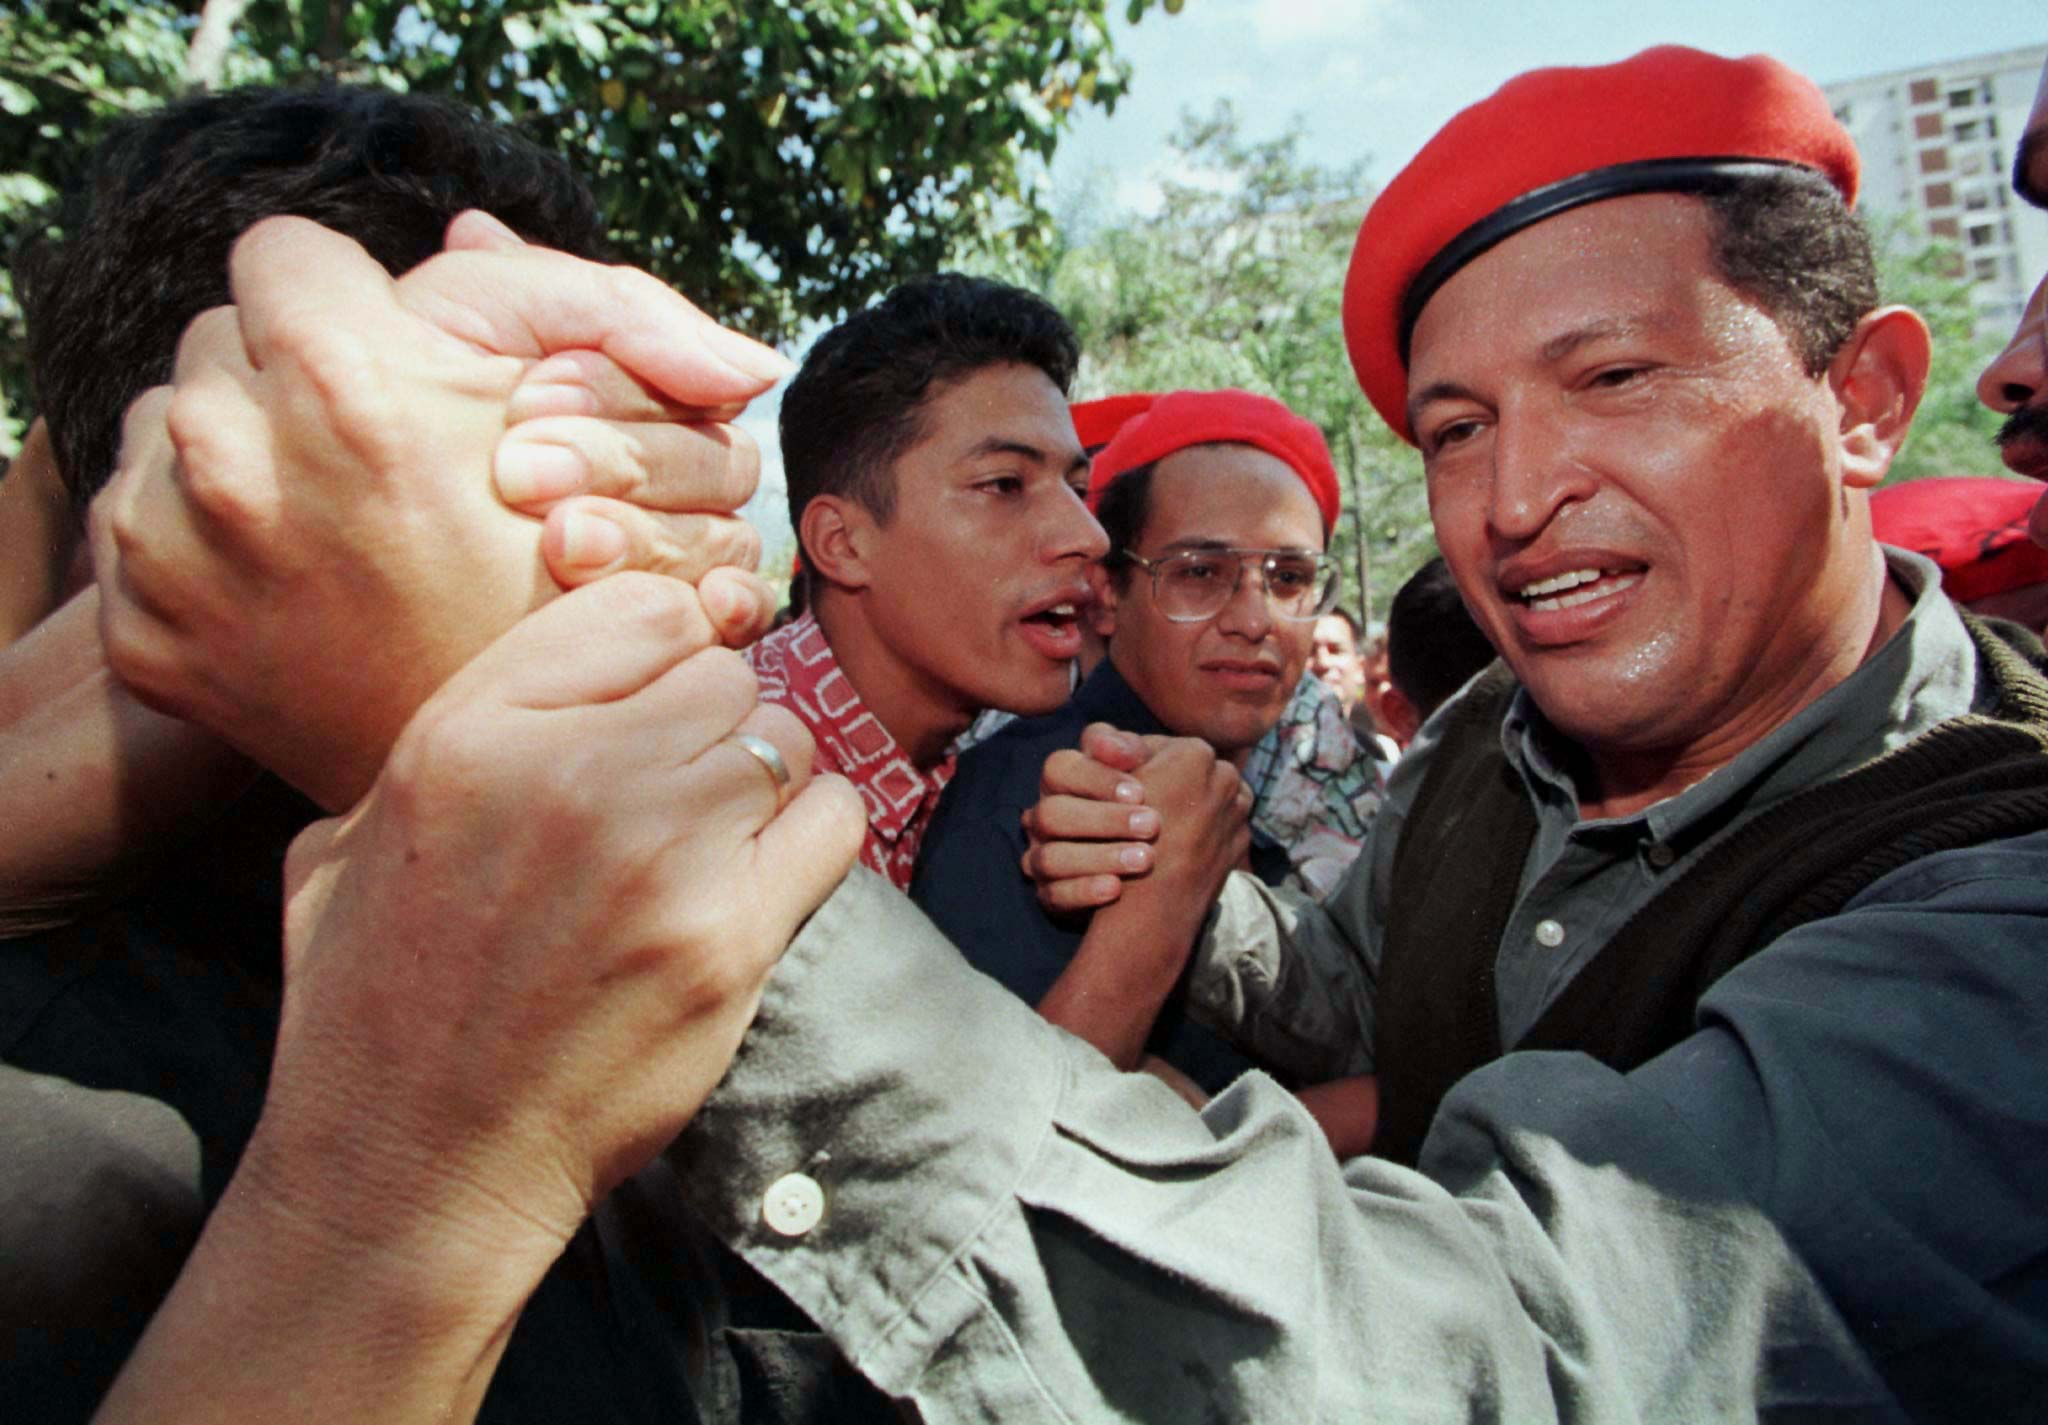 Former Venezuelan coup leader Hugo Chavez Frias shakes hands with a supporter during a political rally in a poor residential area of Caracas January 31, 1998. ©REUTERS